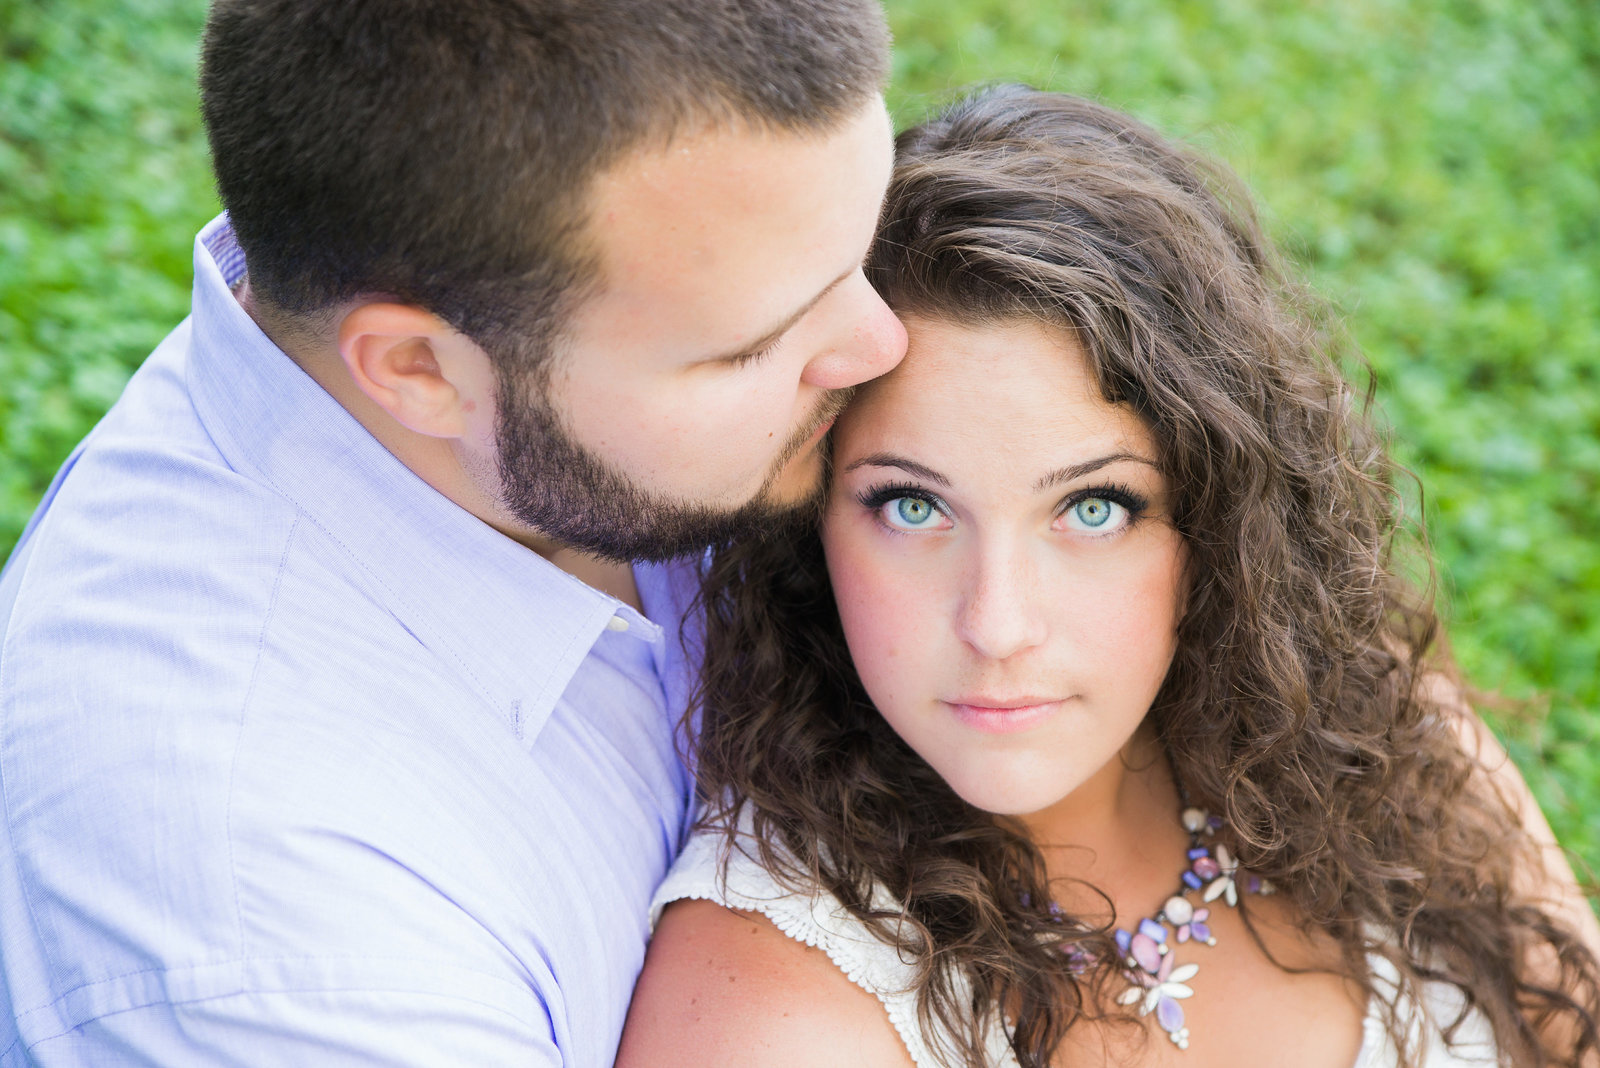 NJ_Rustic_Engagement_Photography018